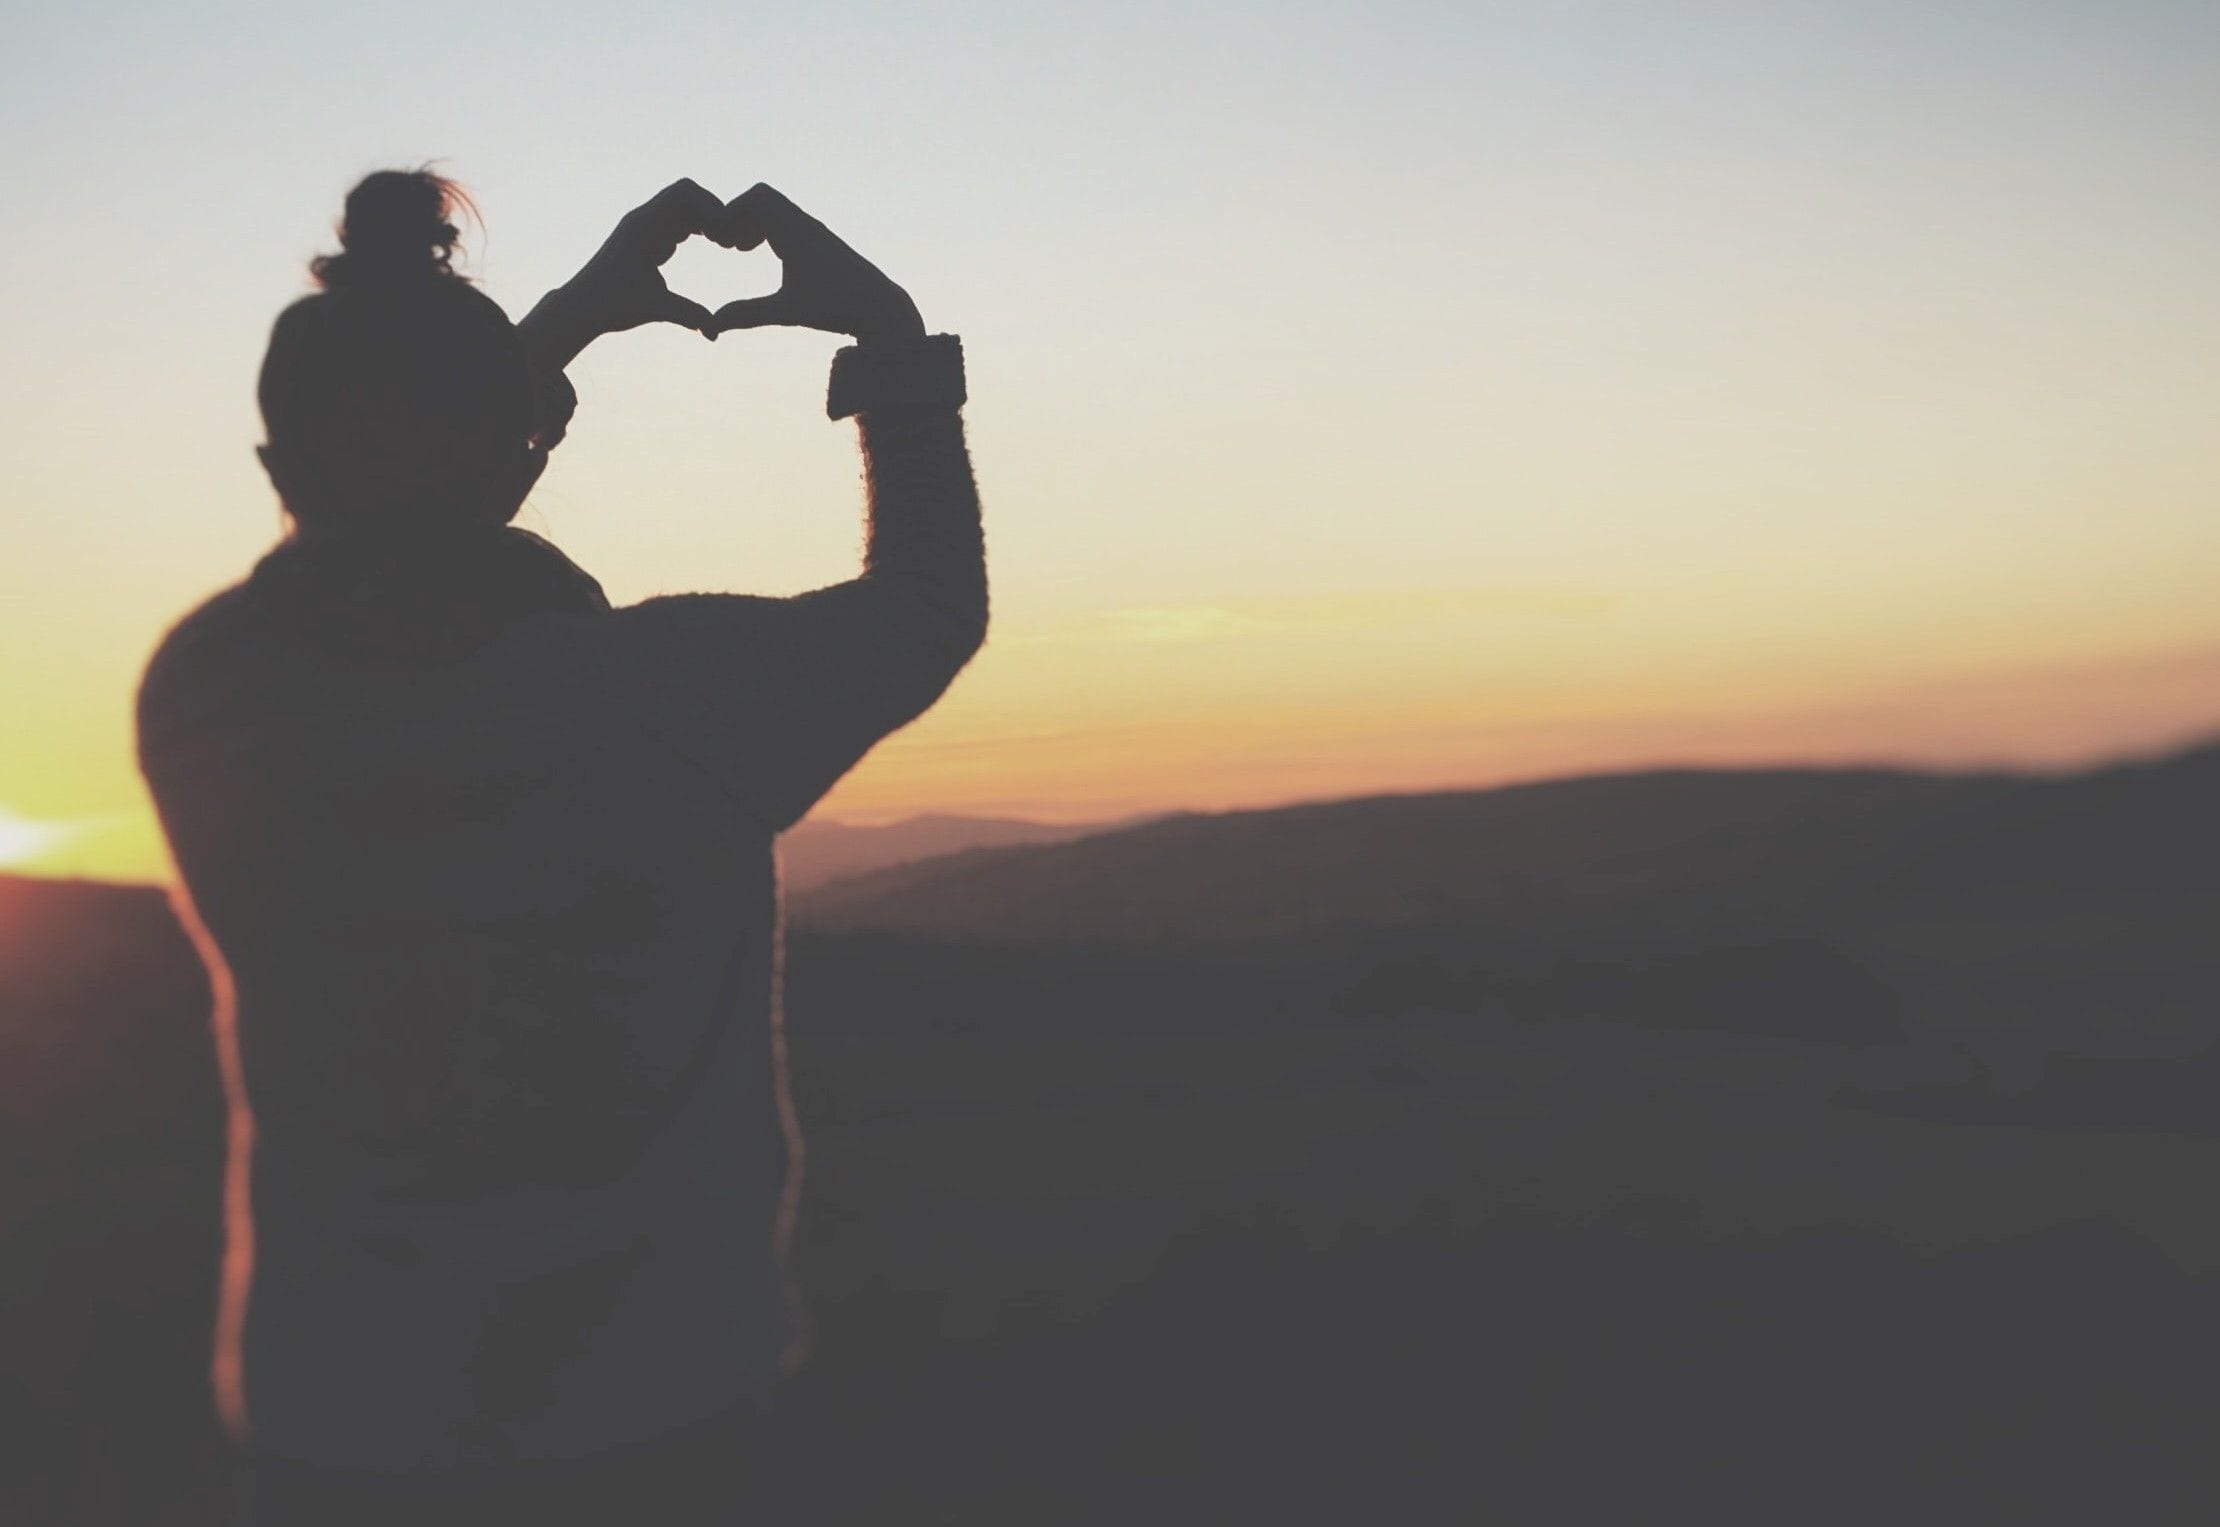 A person looking over the horizon, making a heart with their hands